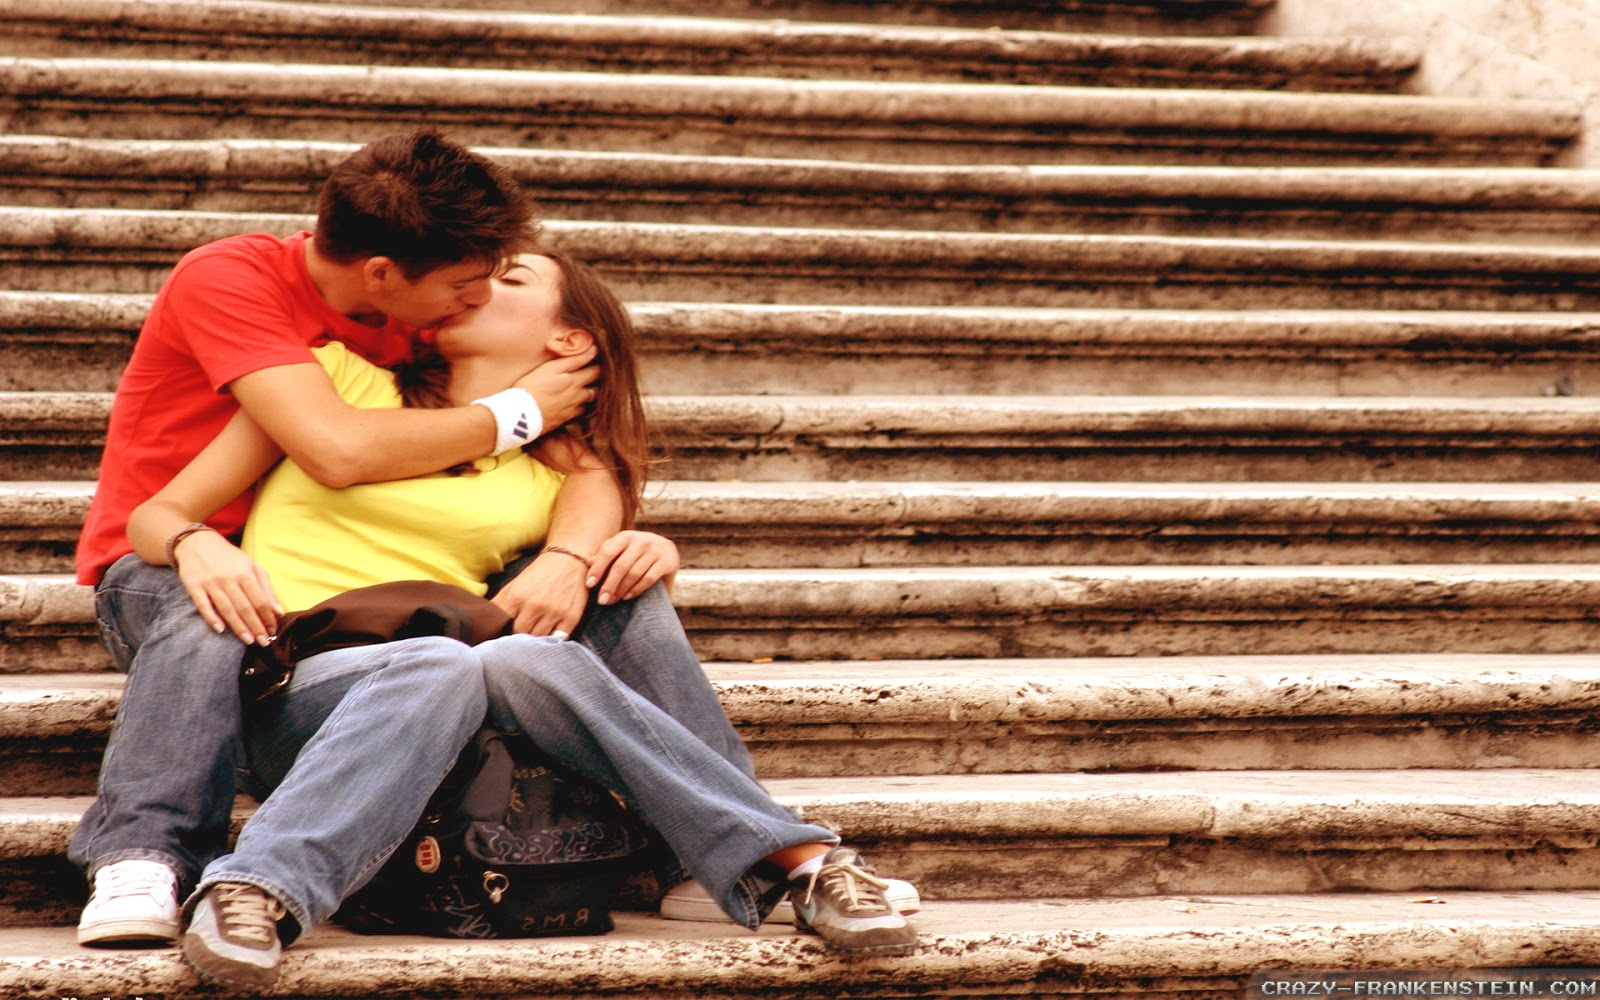 Romantic Kissing Style Images for Lovers